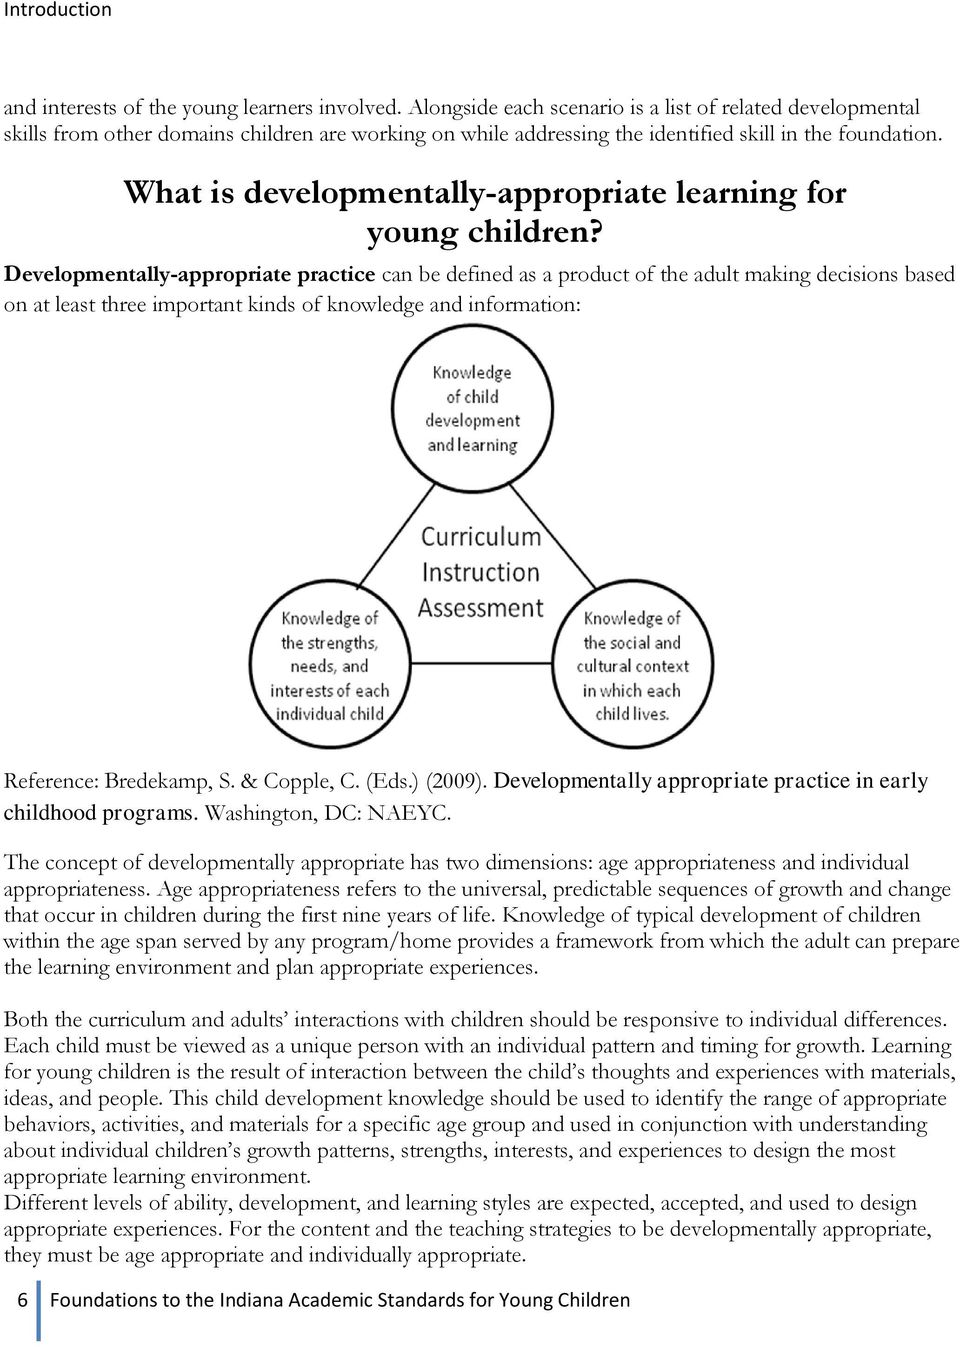 What is developmentally-appropriate learning for young children?